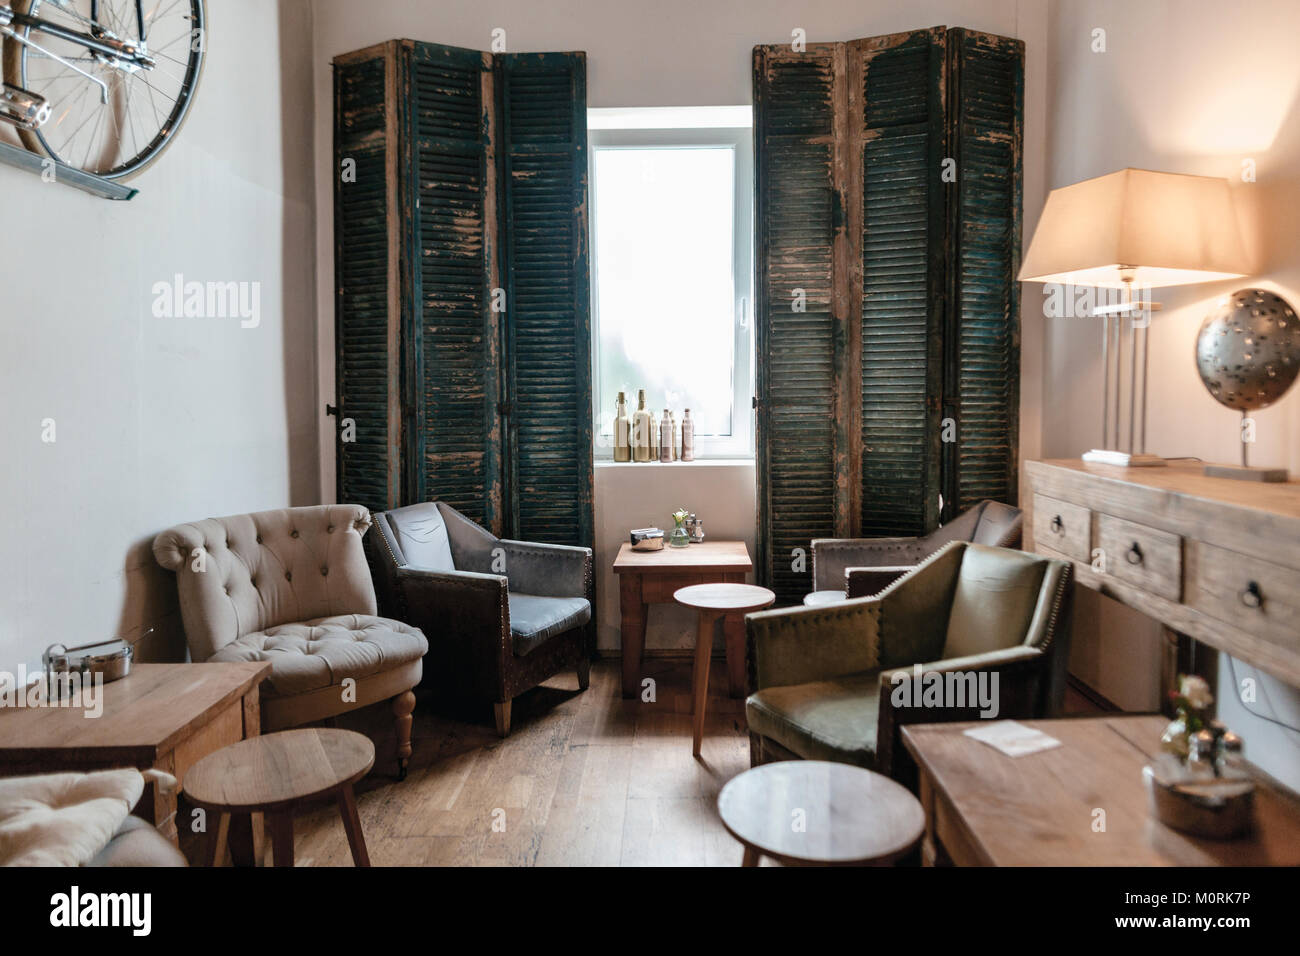 Interieur of a cafe - Stock Image